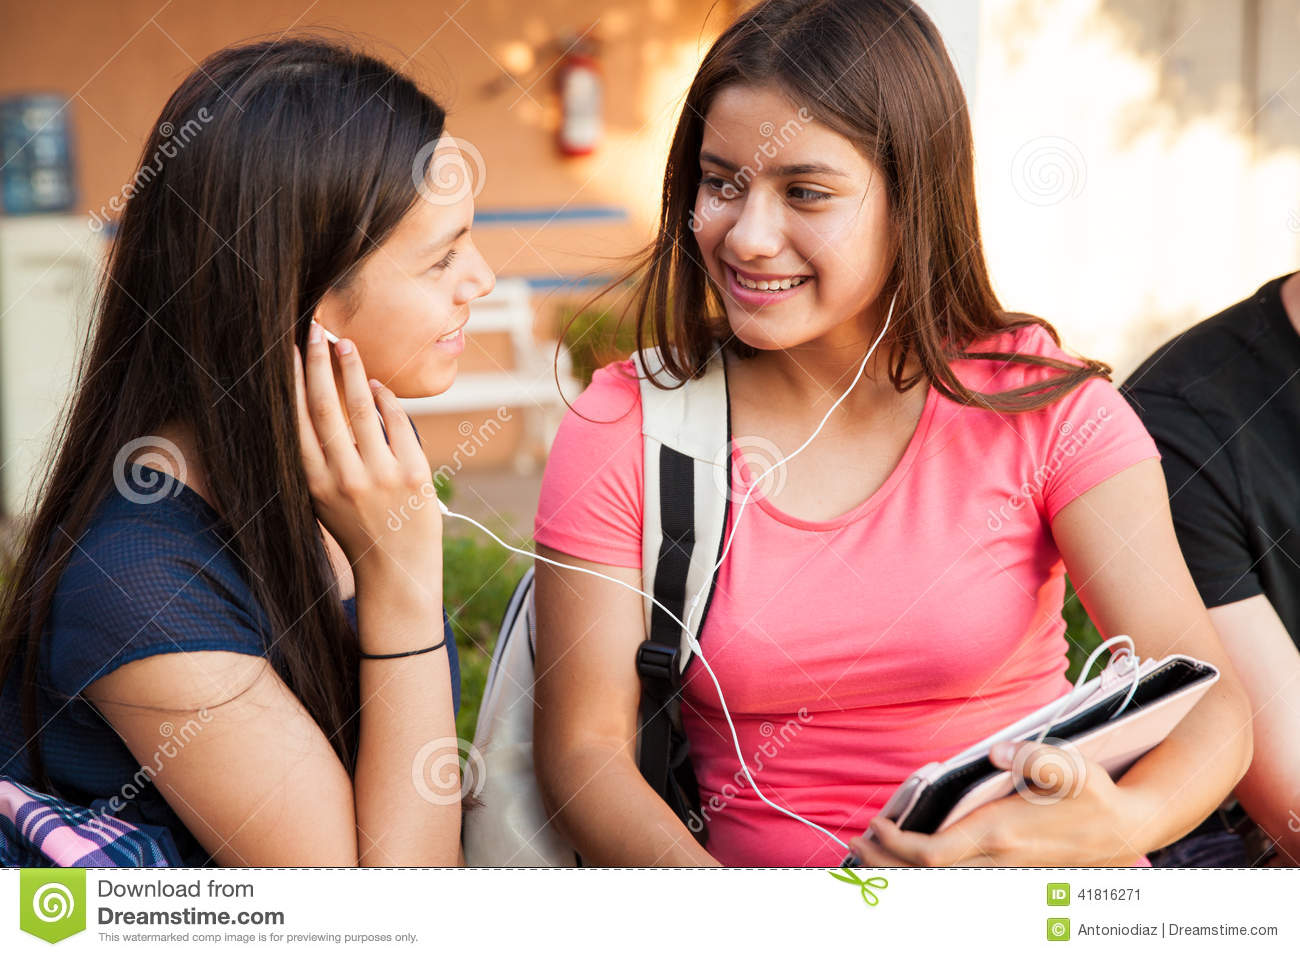 Best Friends Listening To Music Stock Image - Image: 41816271